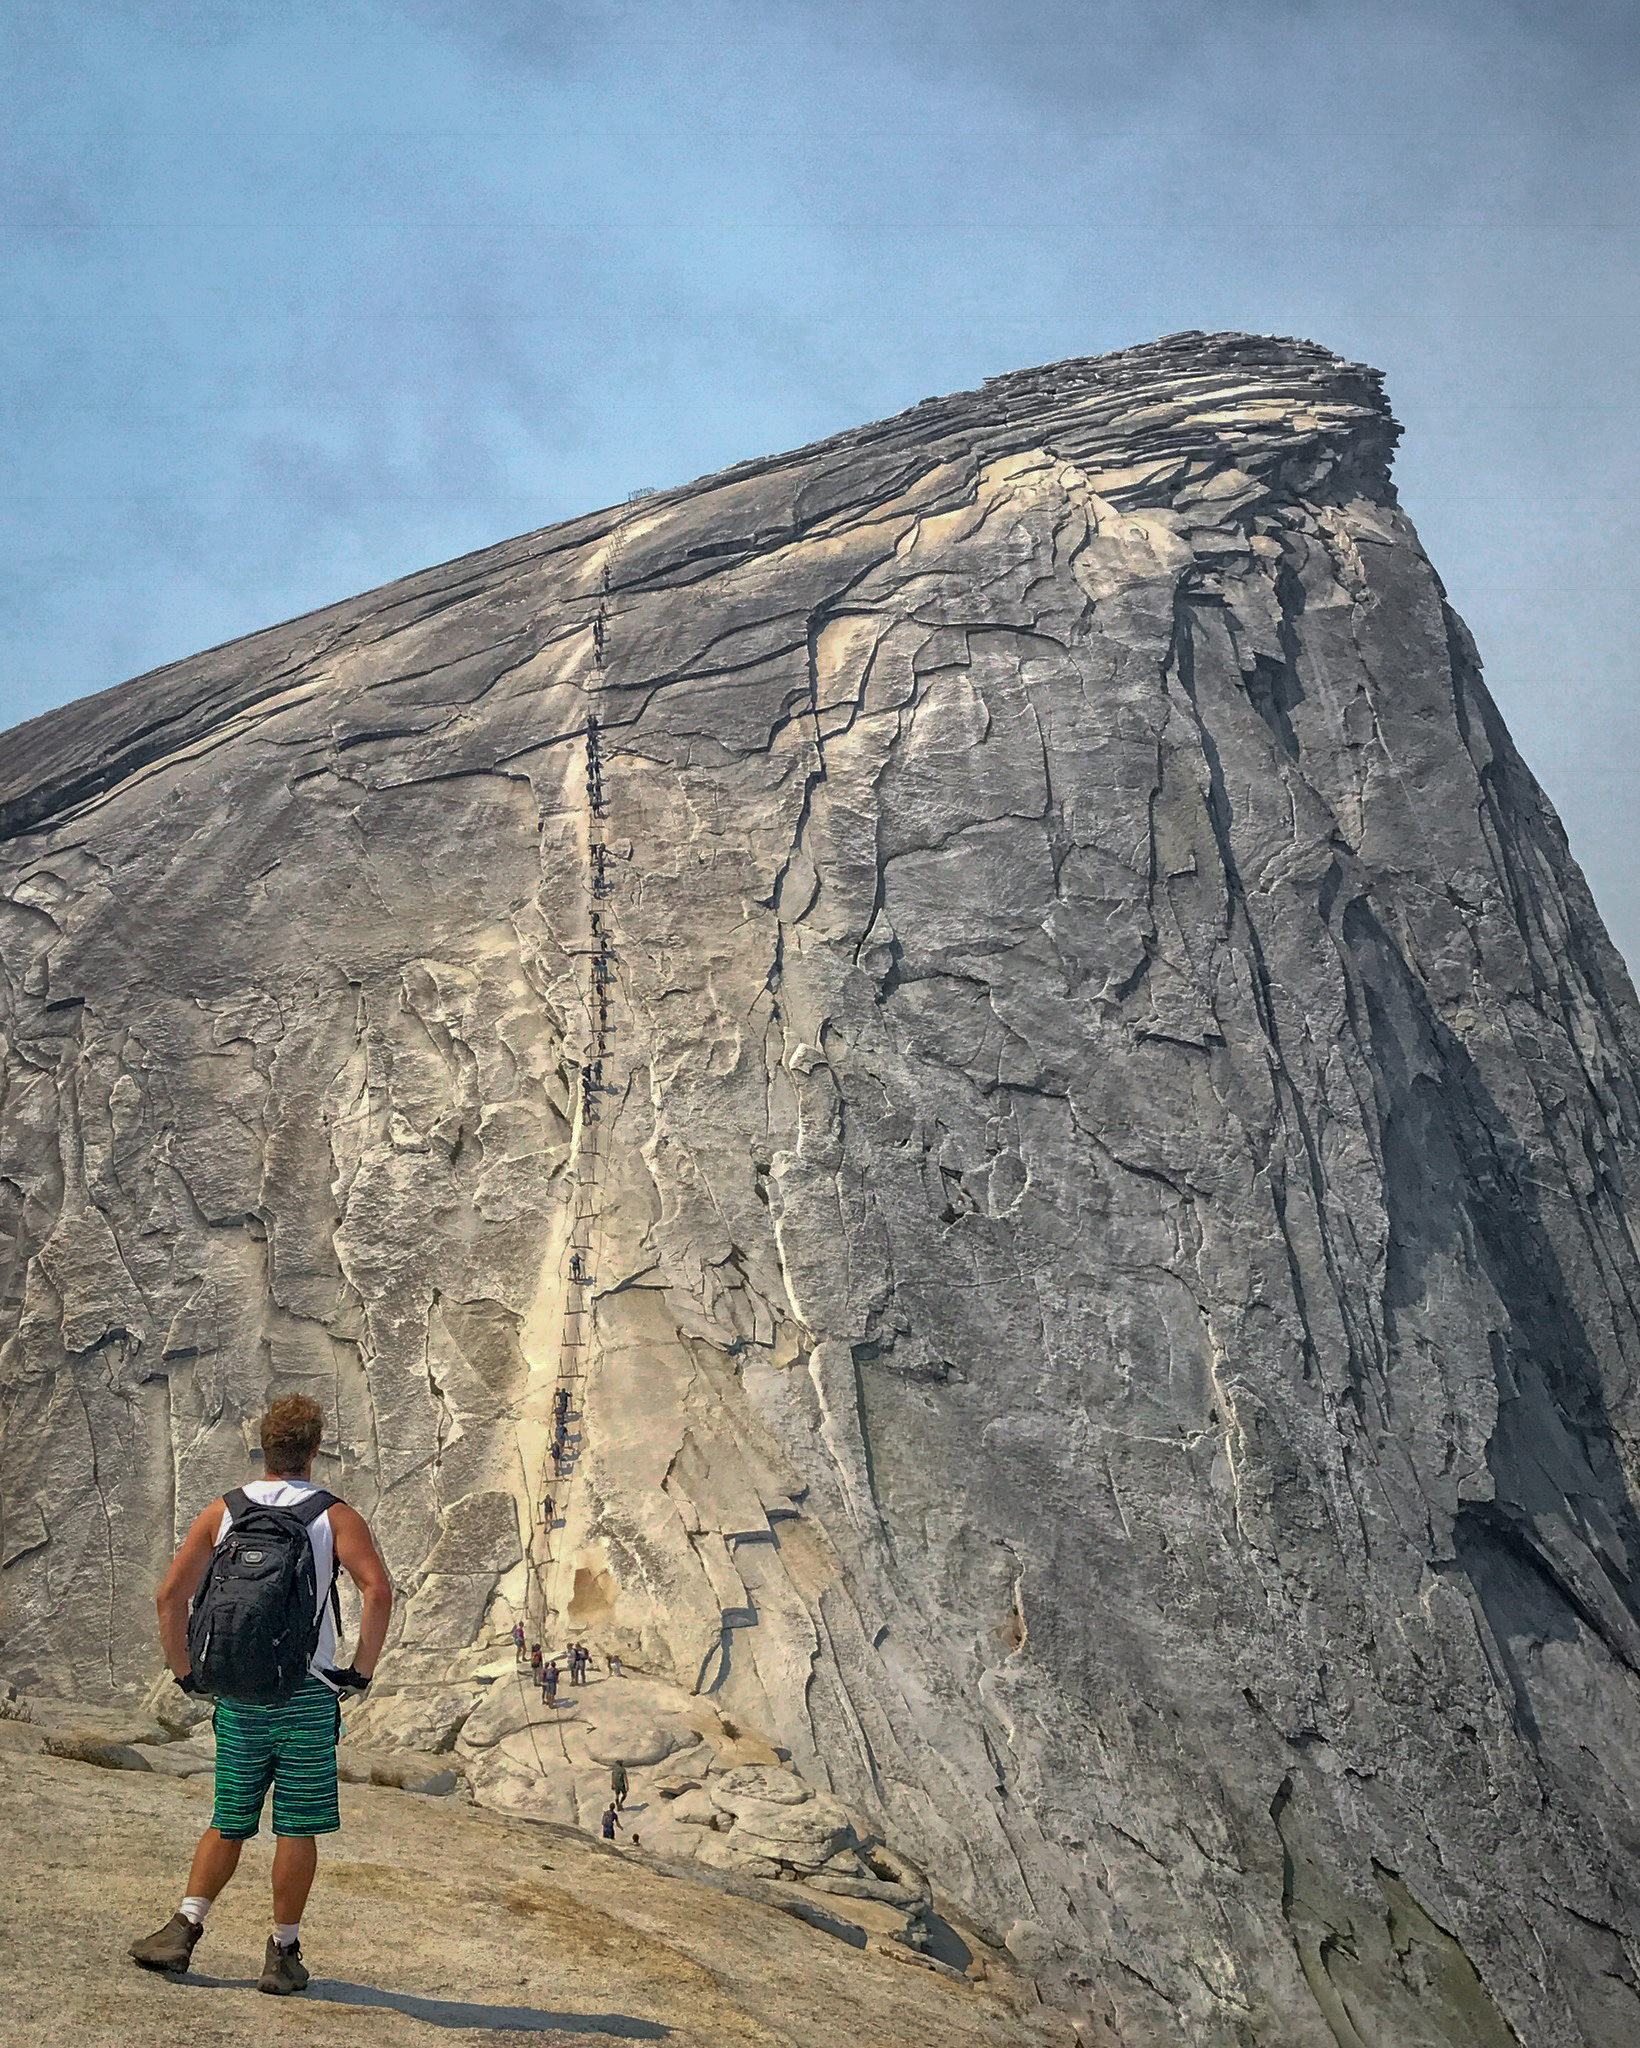 Yosemite National Park's Most Stunning Day Hikes — Spearhead